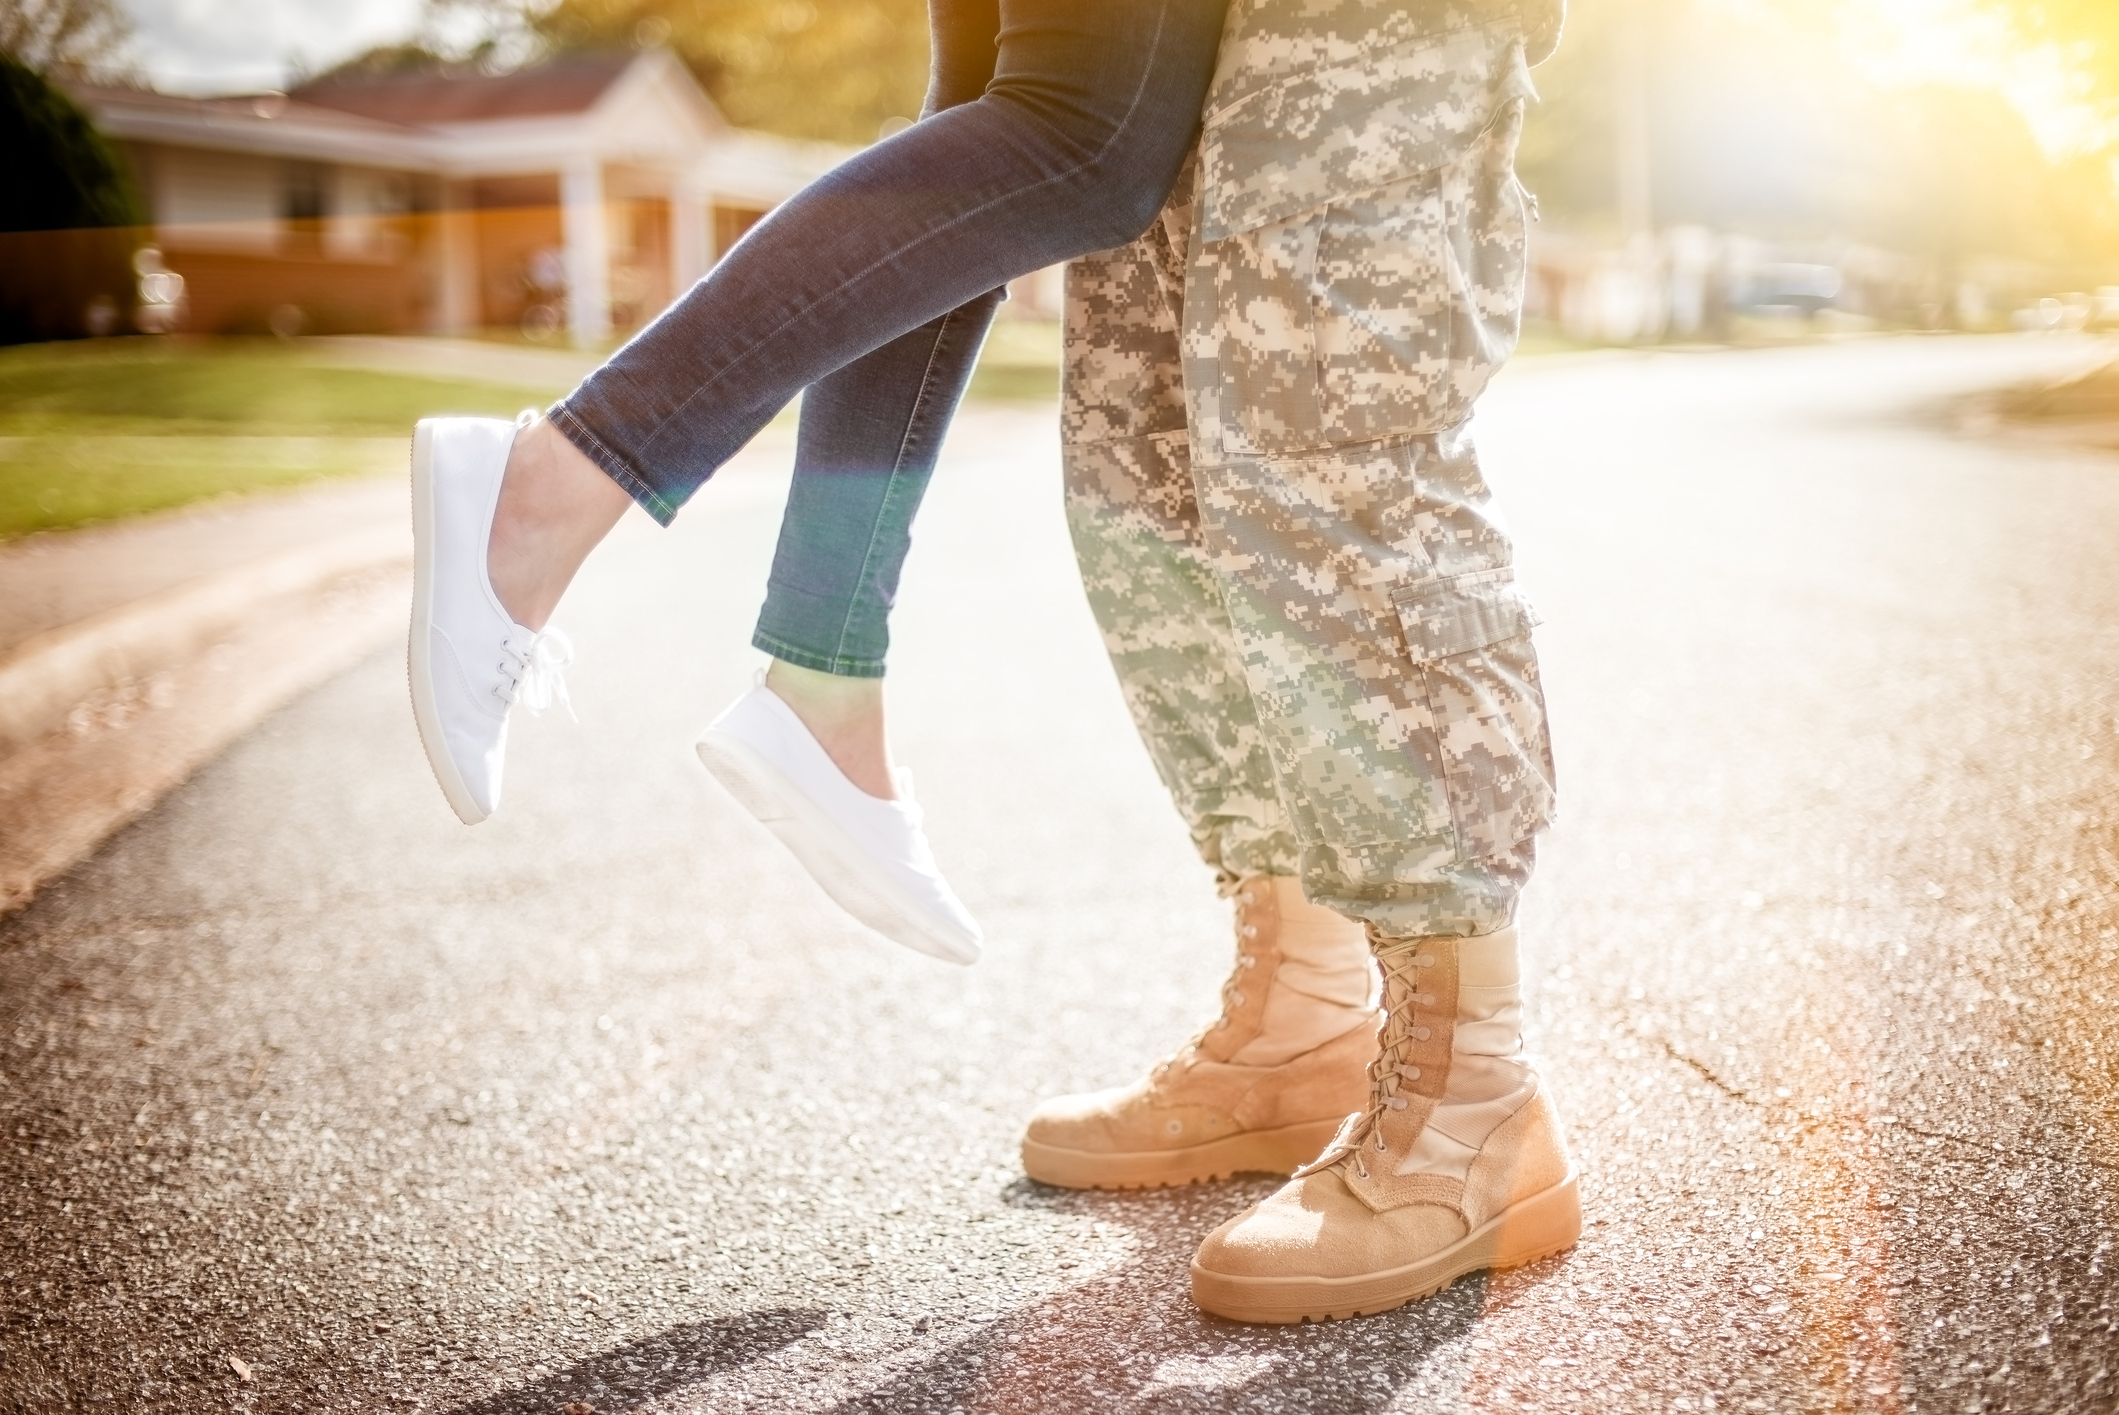 OPERATION FAMILY RISE     ZTActive provides assistance to the heroic families of Veterans and First Responders when they need it most...  Learn more